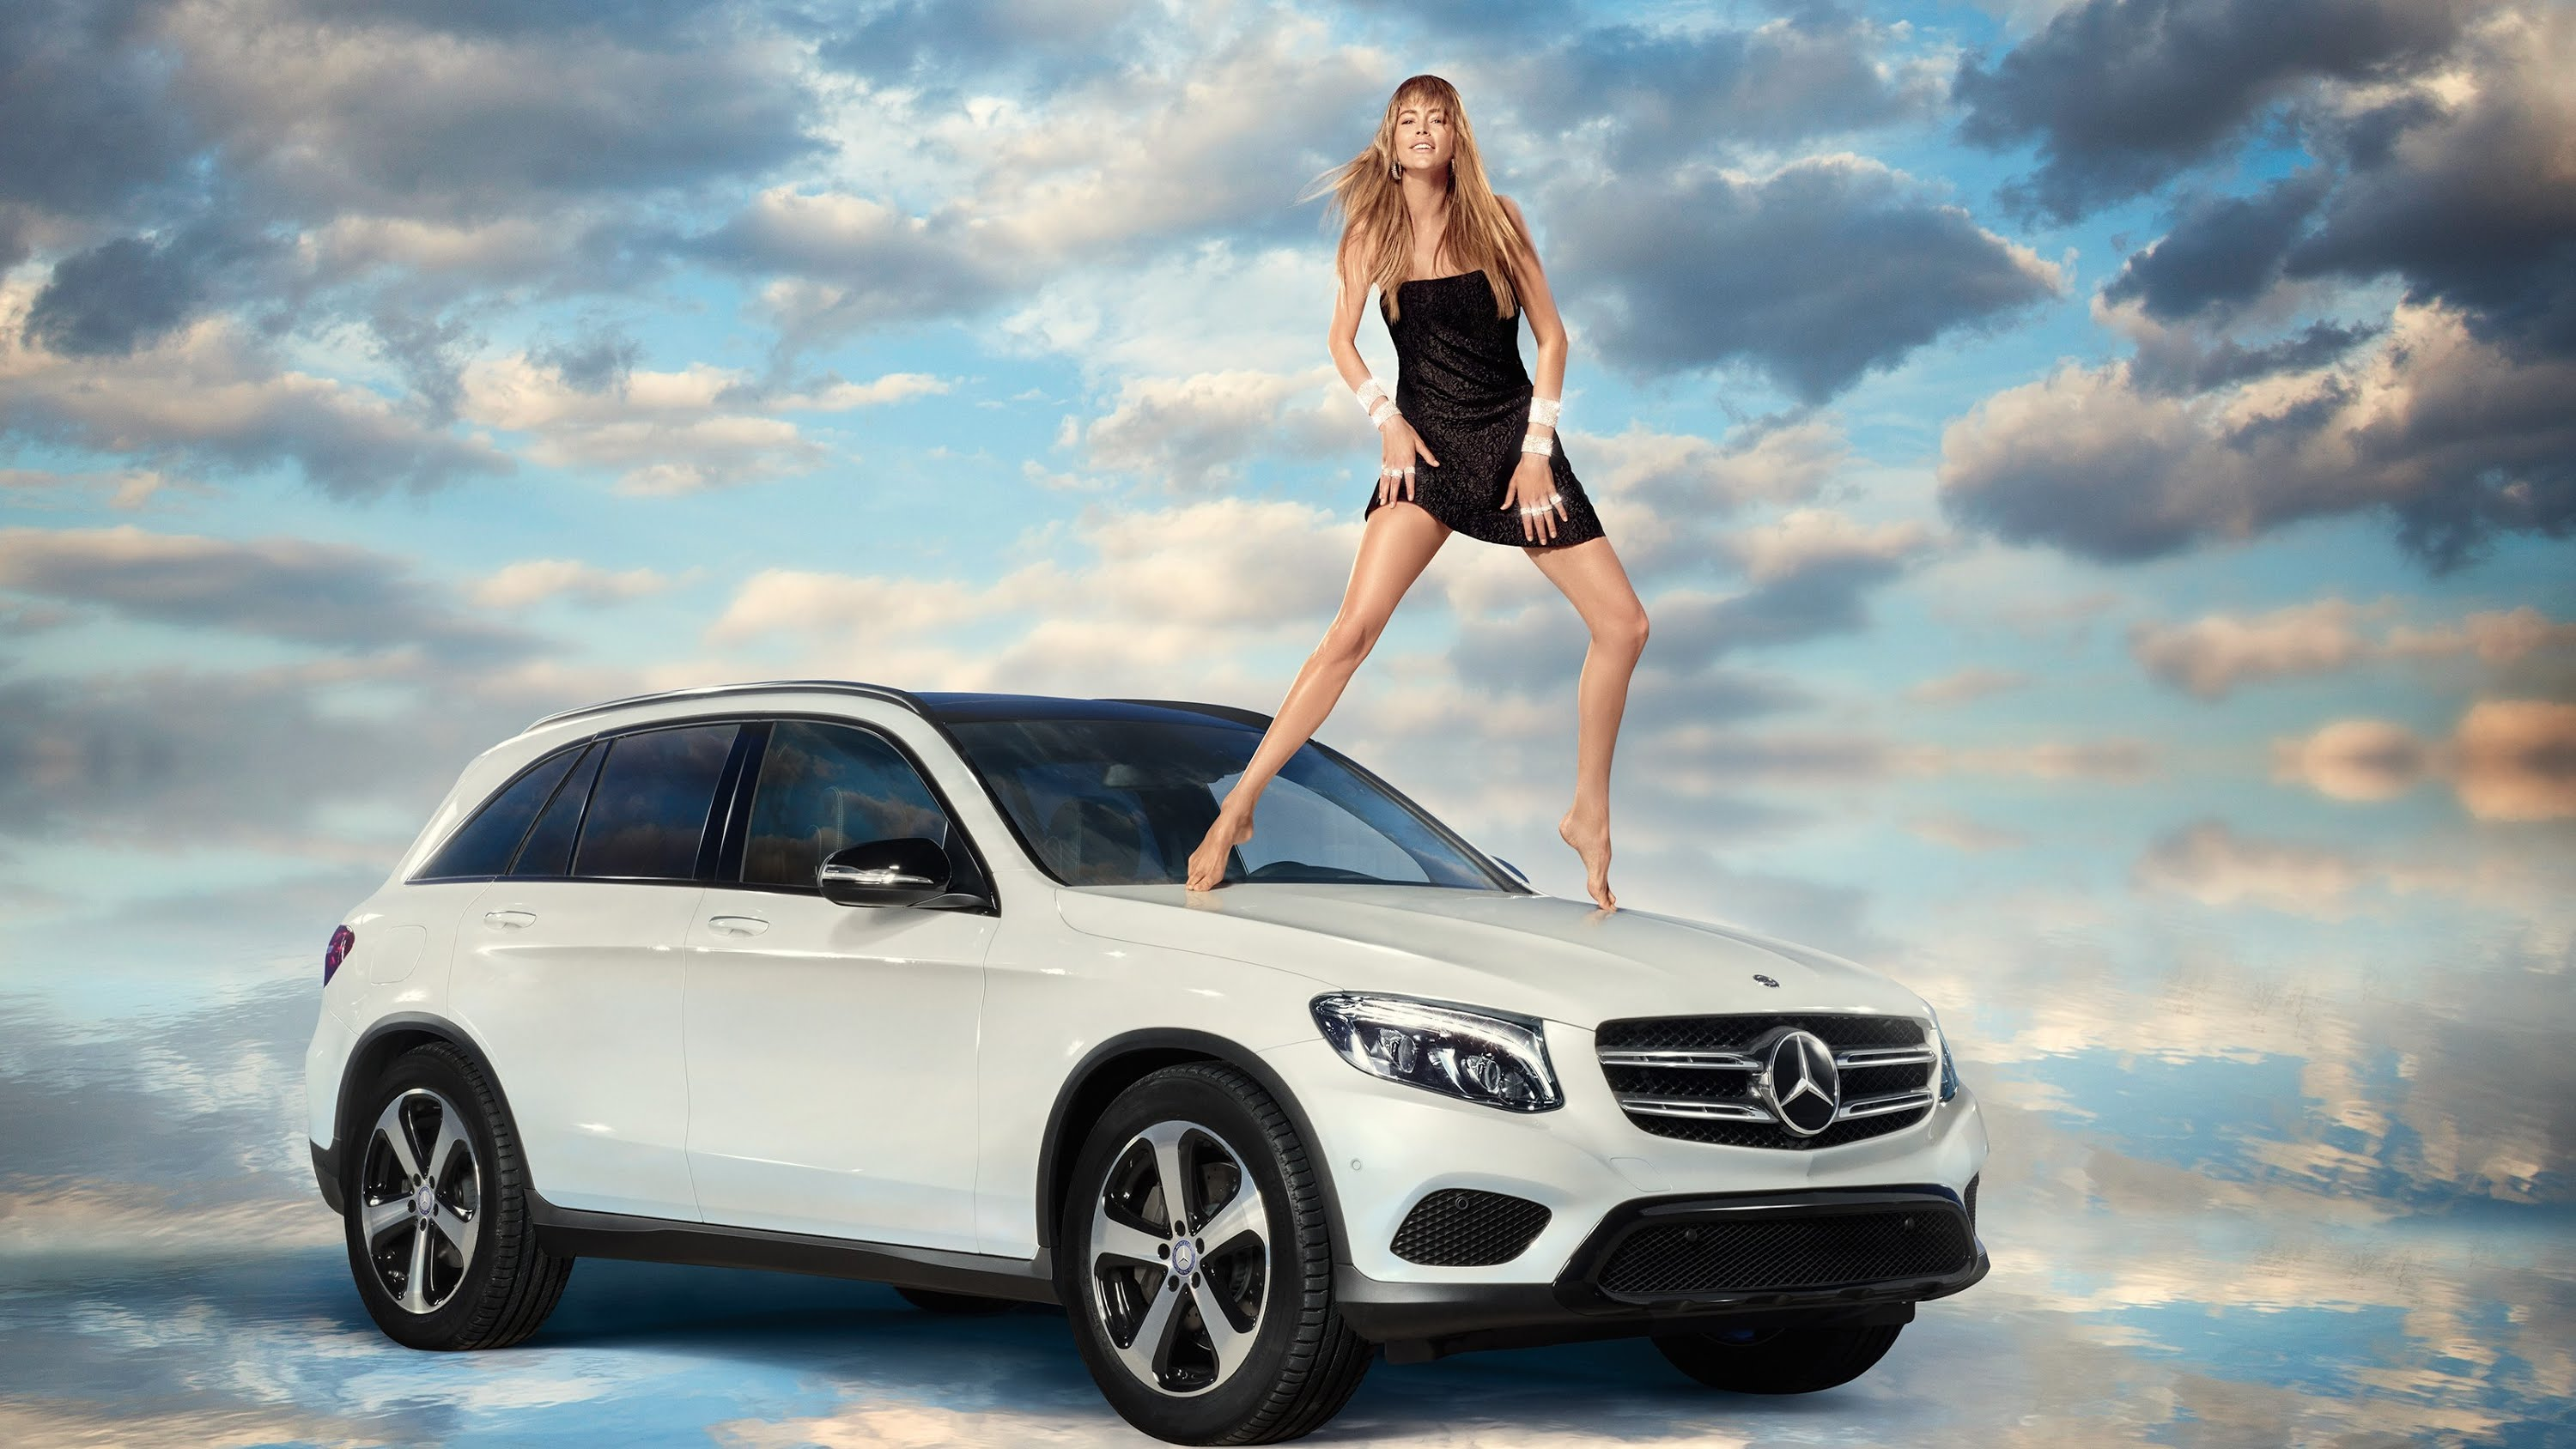 luxury car marketing 45% of all luxury sales are influenced by digital marketing see how luxury brands like chanel, dom perignon, aston martin, harrods are adapting highly effective strategies to drive more sales through online channels.